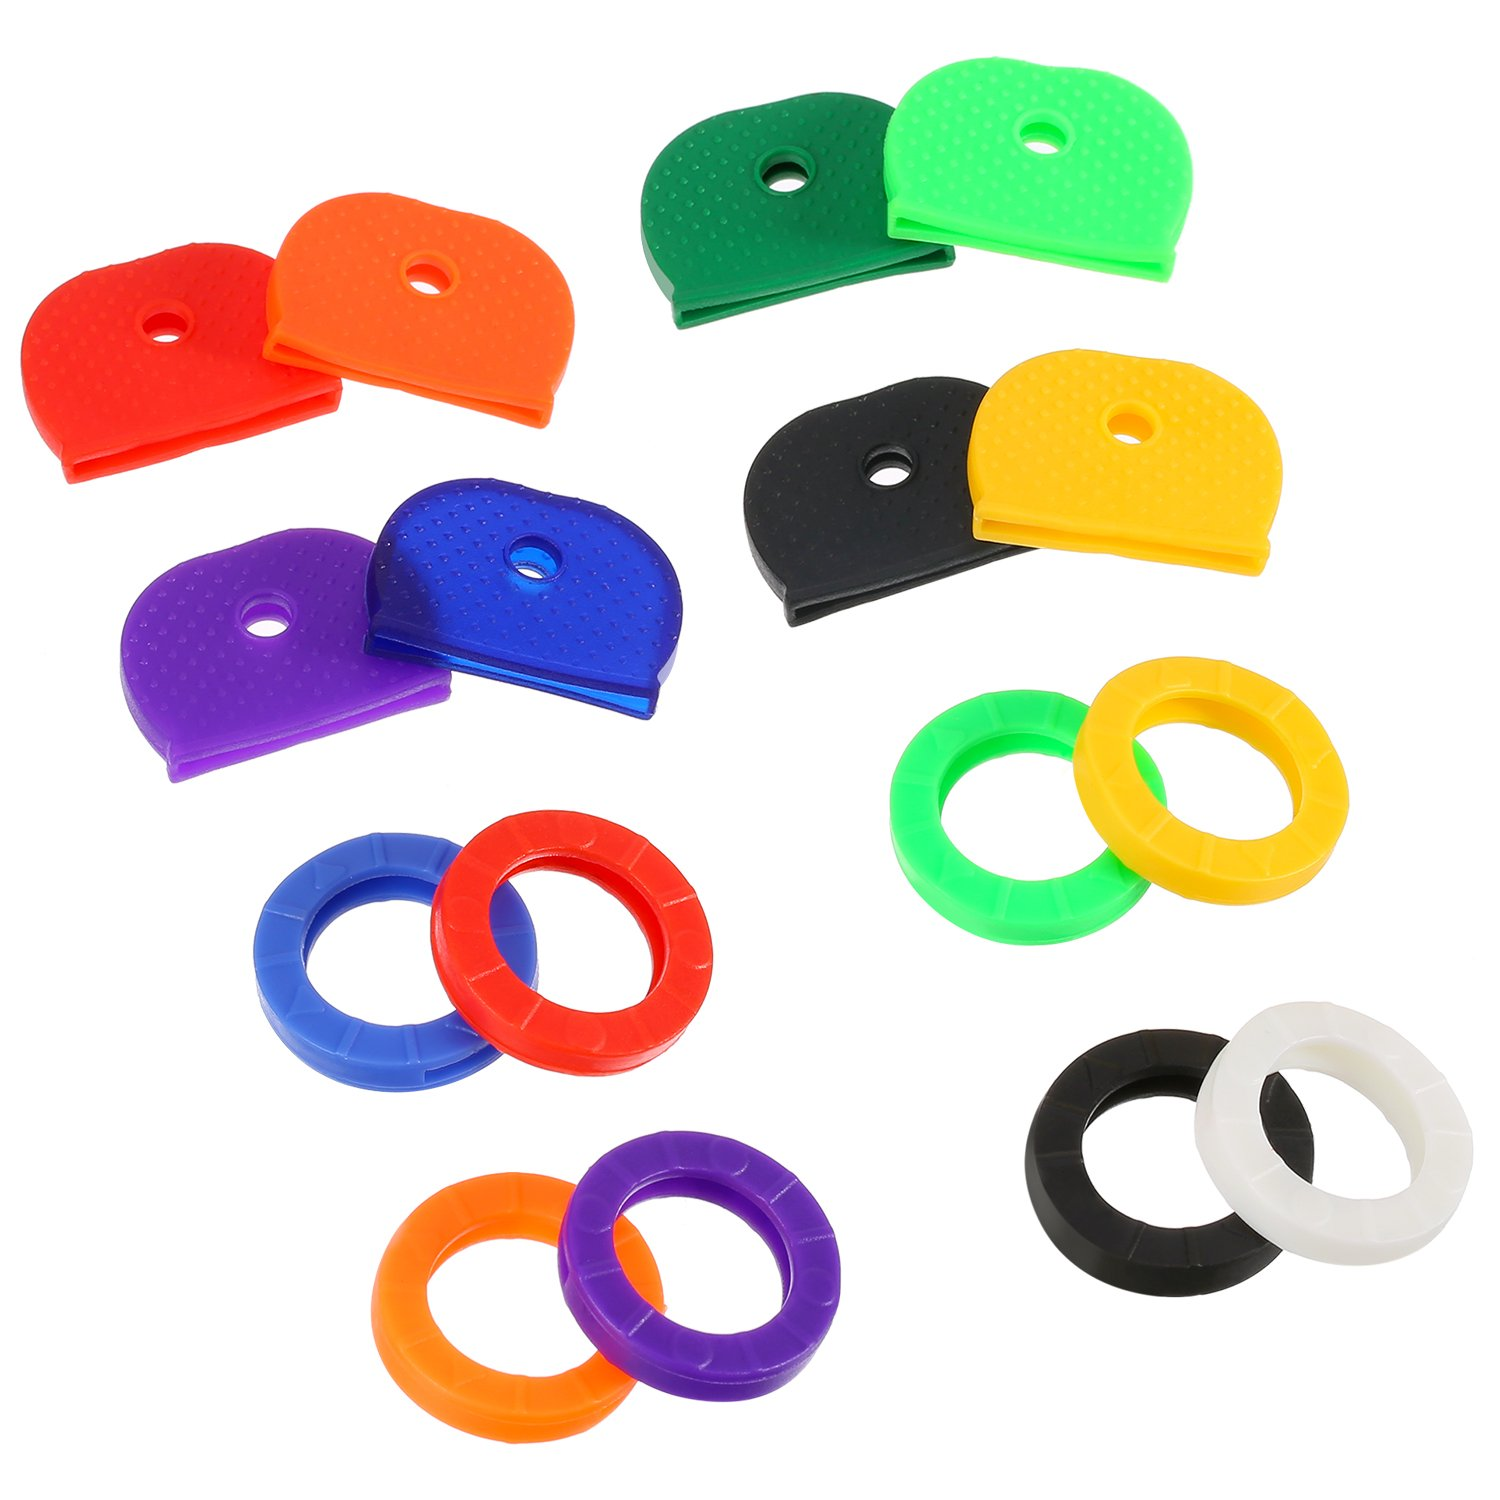 64 Pieces Key Cap Key Identifier Tag Covers Ring Labels Rubber Keycaps, Assorted Color Bememo